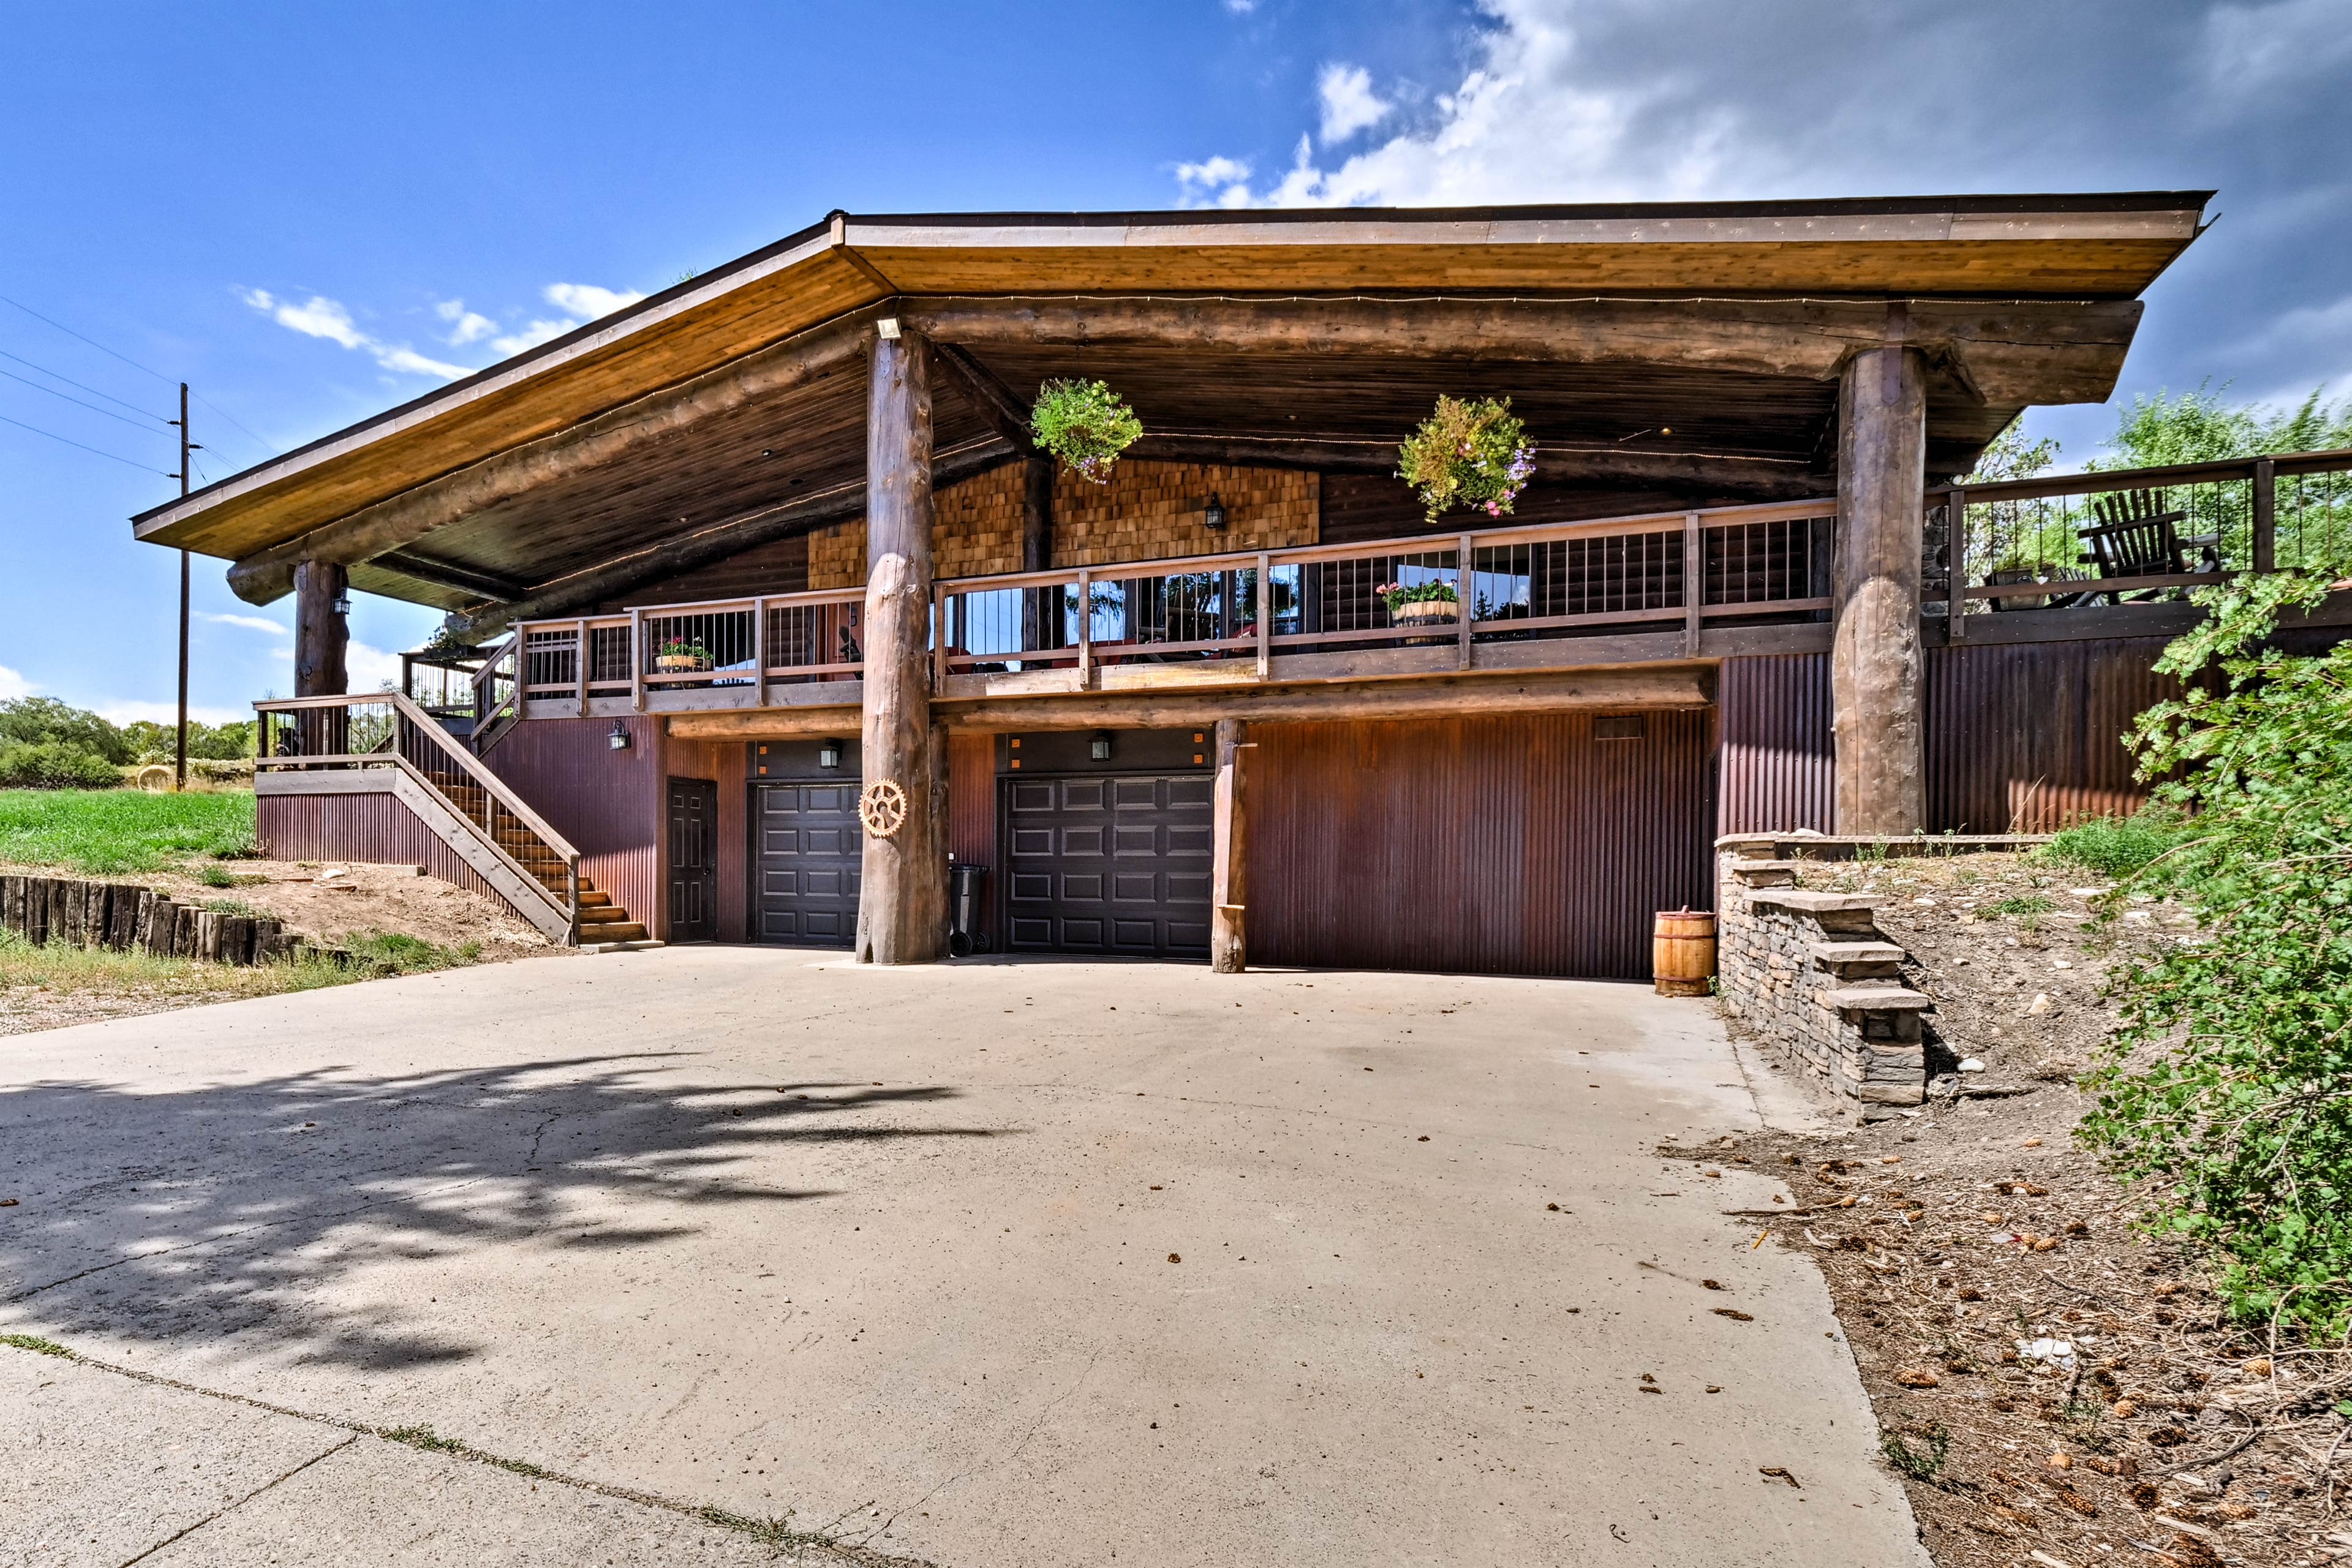 The home is newly renovated & channels the look of a classic log cabin.